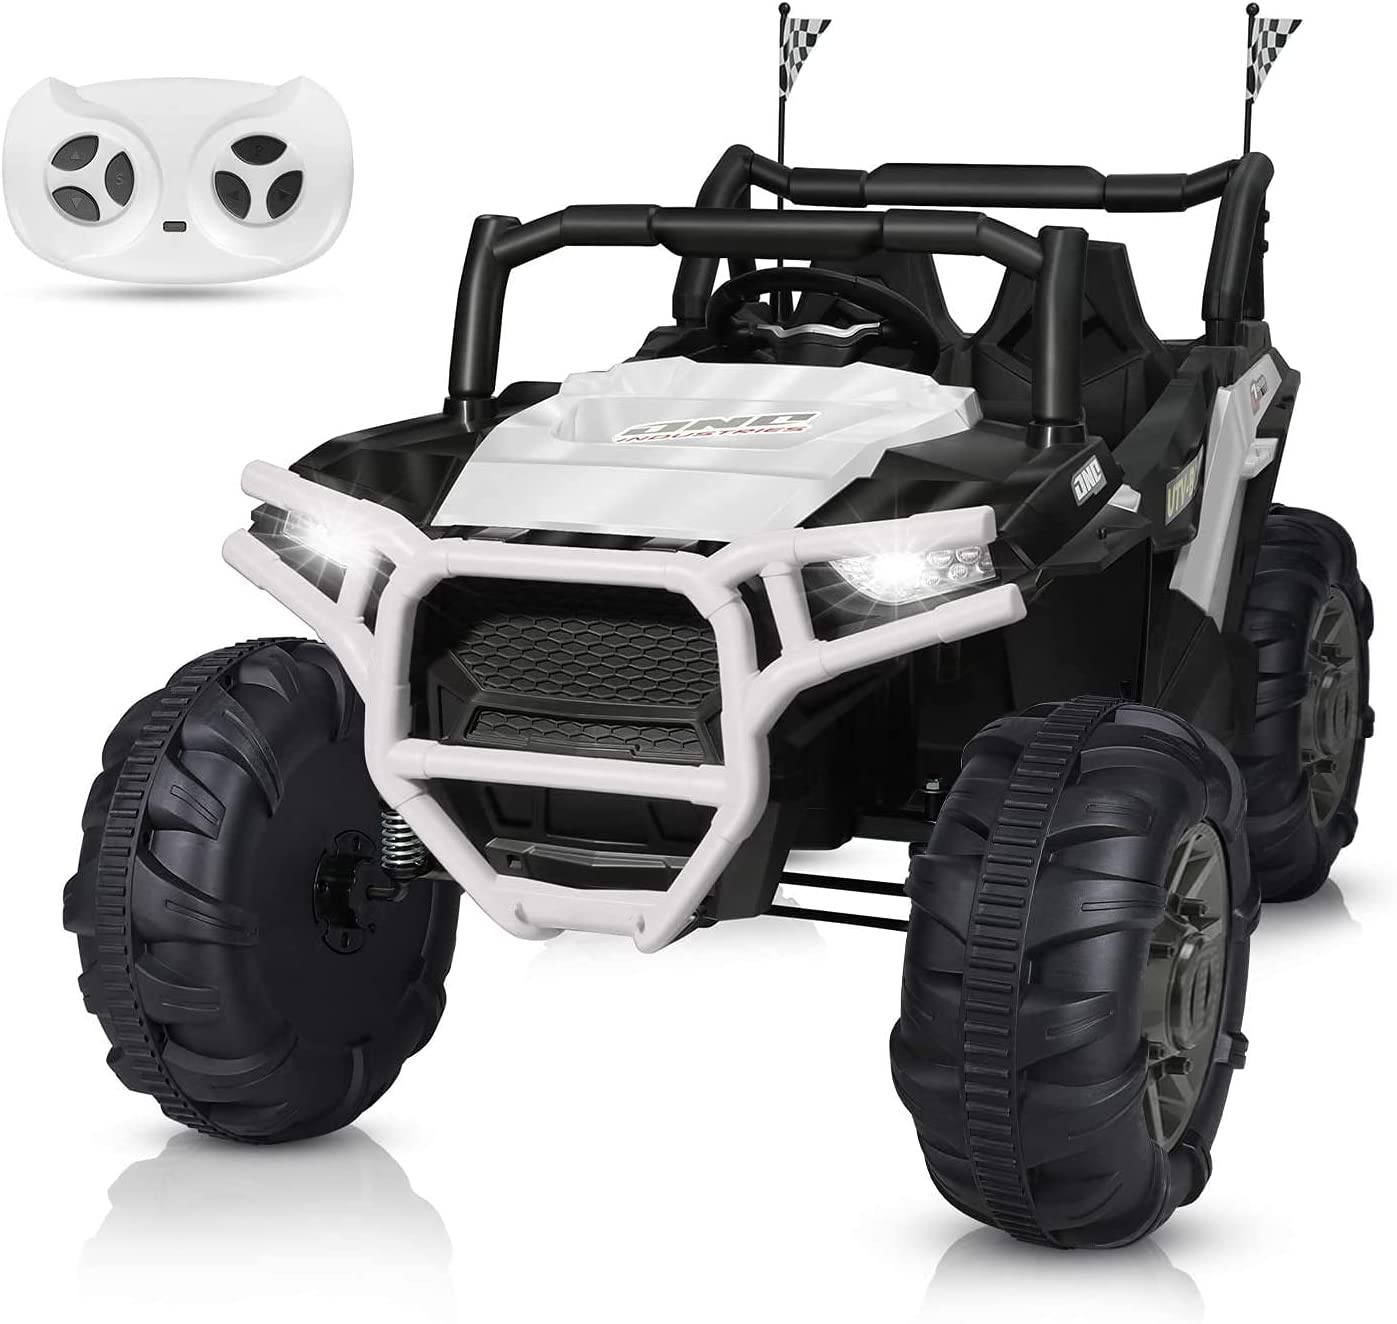 BAHOM Kids 2 Seats Ride On Truck Electric Vehicle Toy 12V for To outlet 2021new shipping free